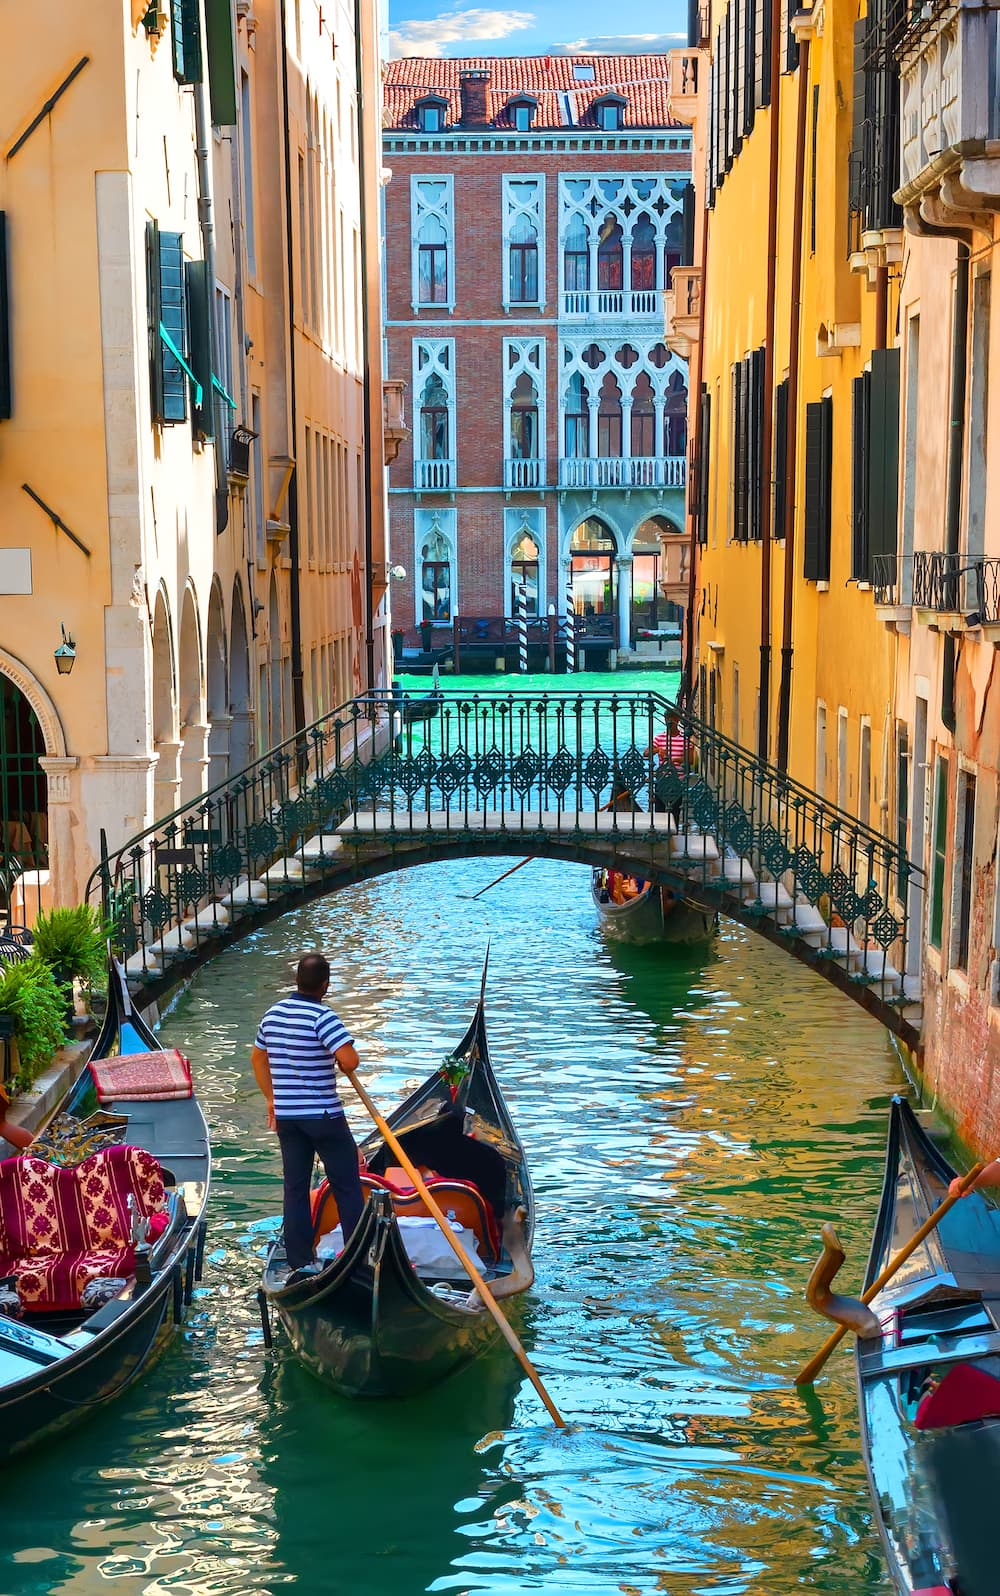 View of a gondola on a canal in Venice.